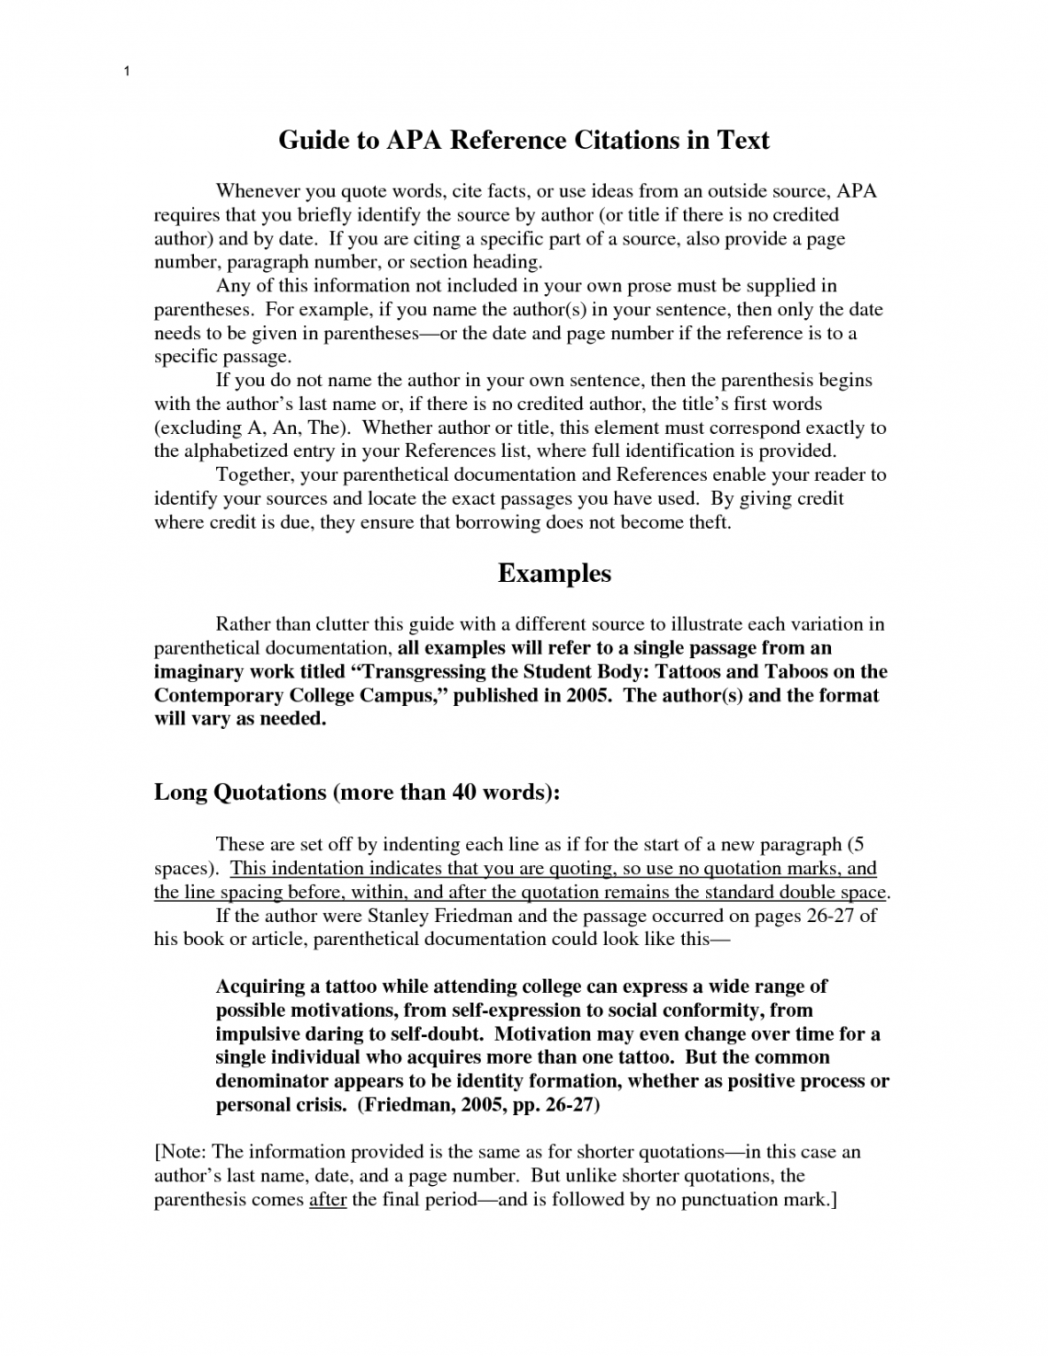 011 How To Start An Essay With Quote Using Quotes In Format Quotation Starting Beginning Explanatory Sample 1048x1356 Wonderful A Argumentative Write About Mla Full